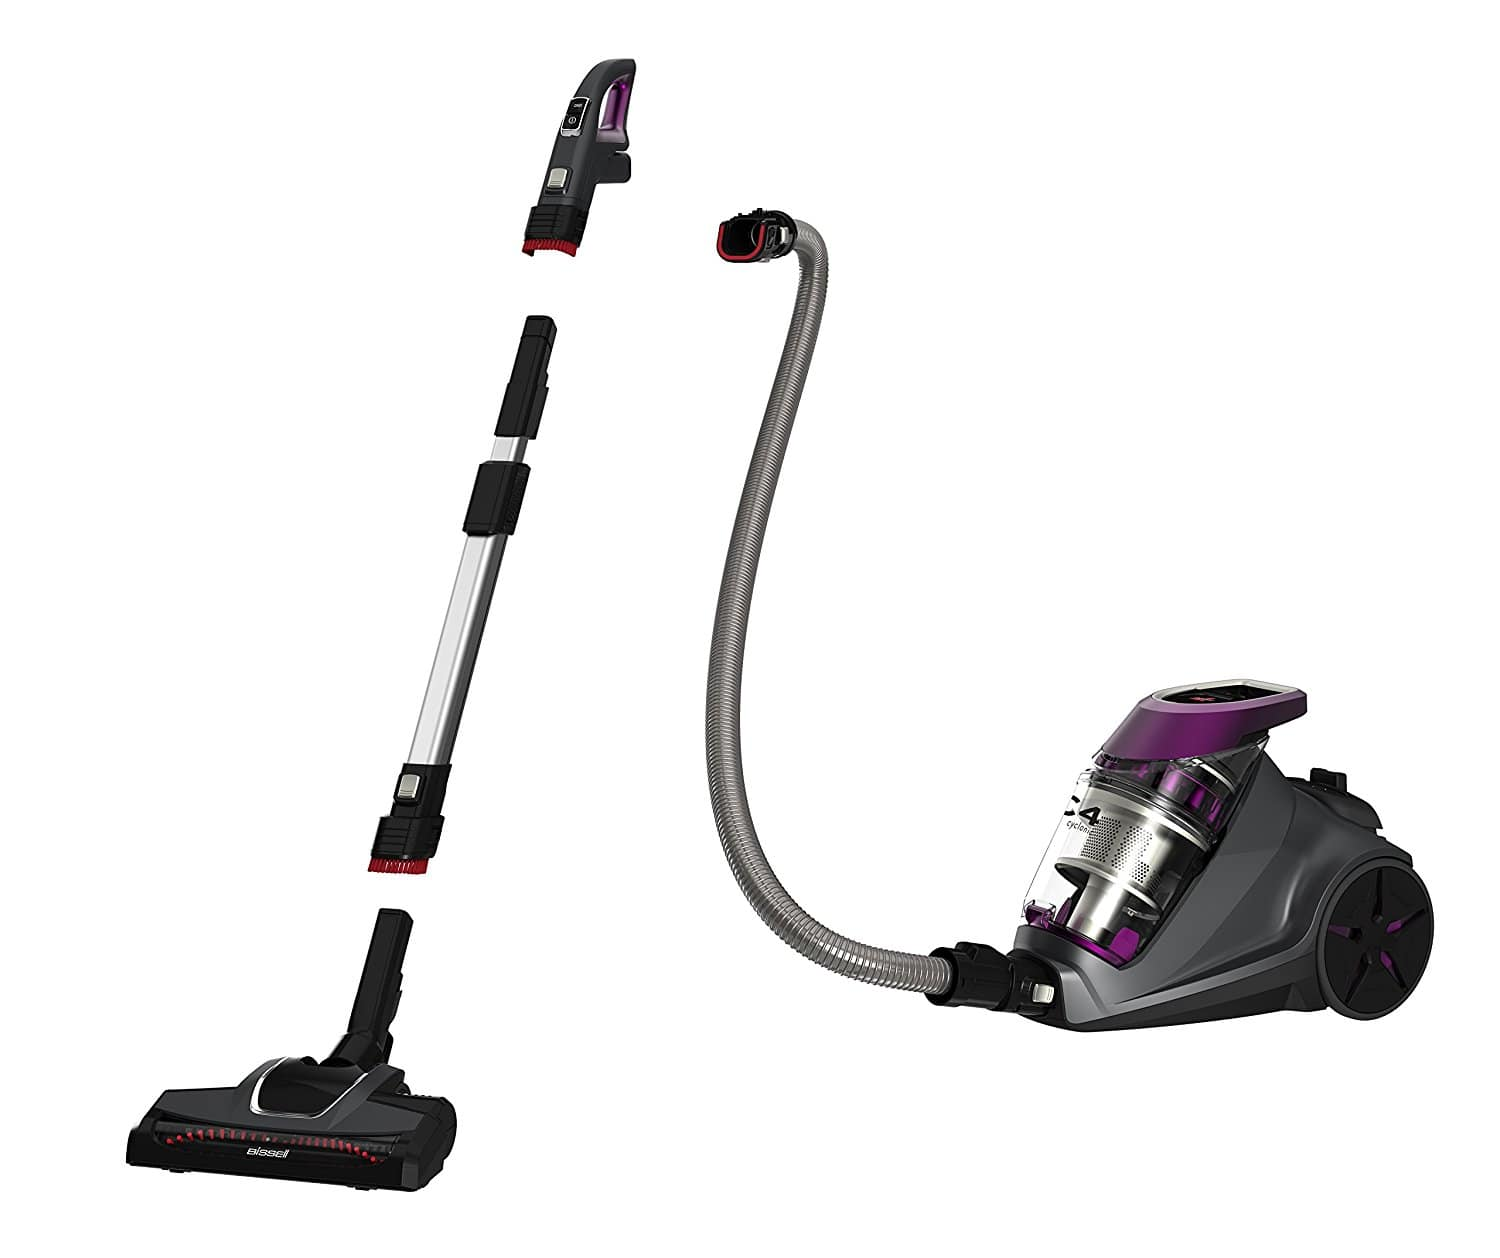 Bissell 1233 C4 Cyclonic Bagless Canister Vacuum - $77 + FS $76.84